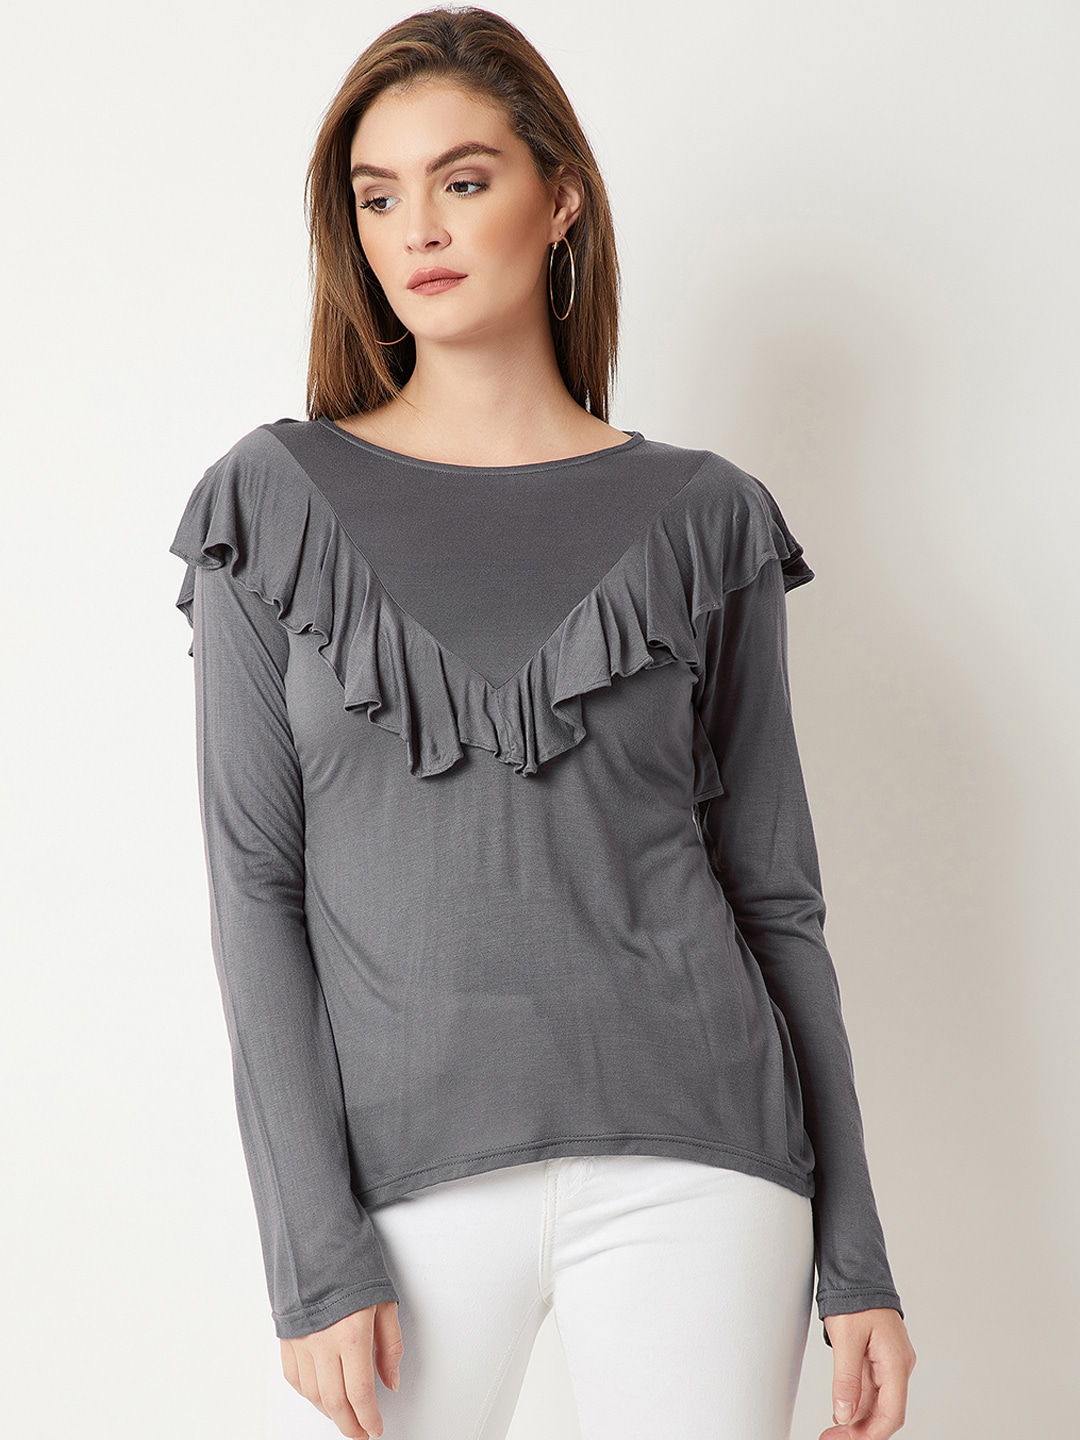 00b5a55e Miss Chase Long Sleeves Tops - Buy Miss Chase Long Sleeves Tops online in  India